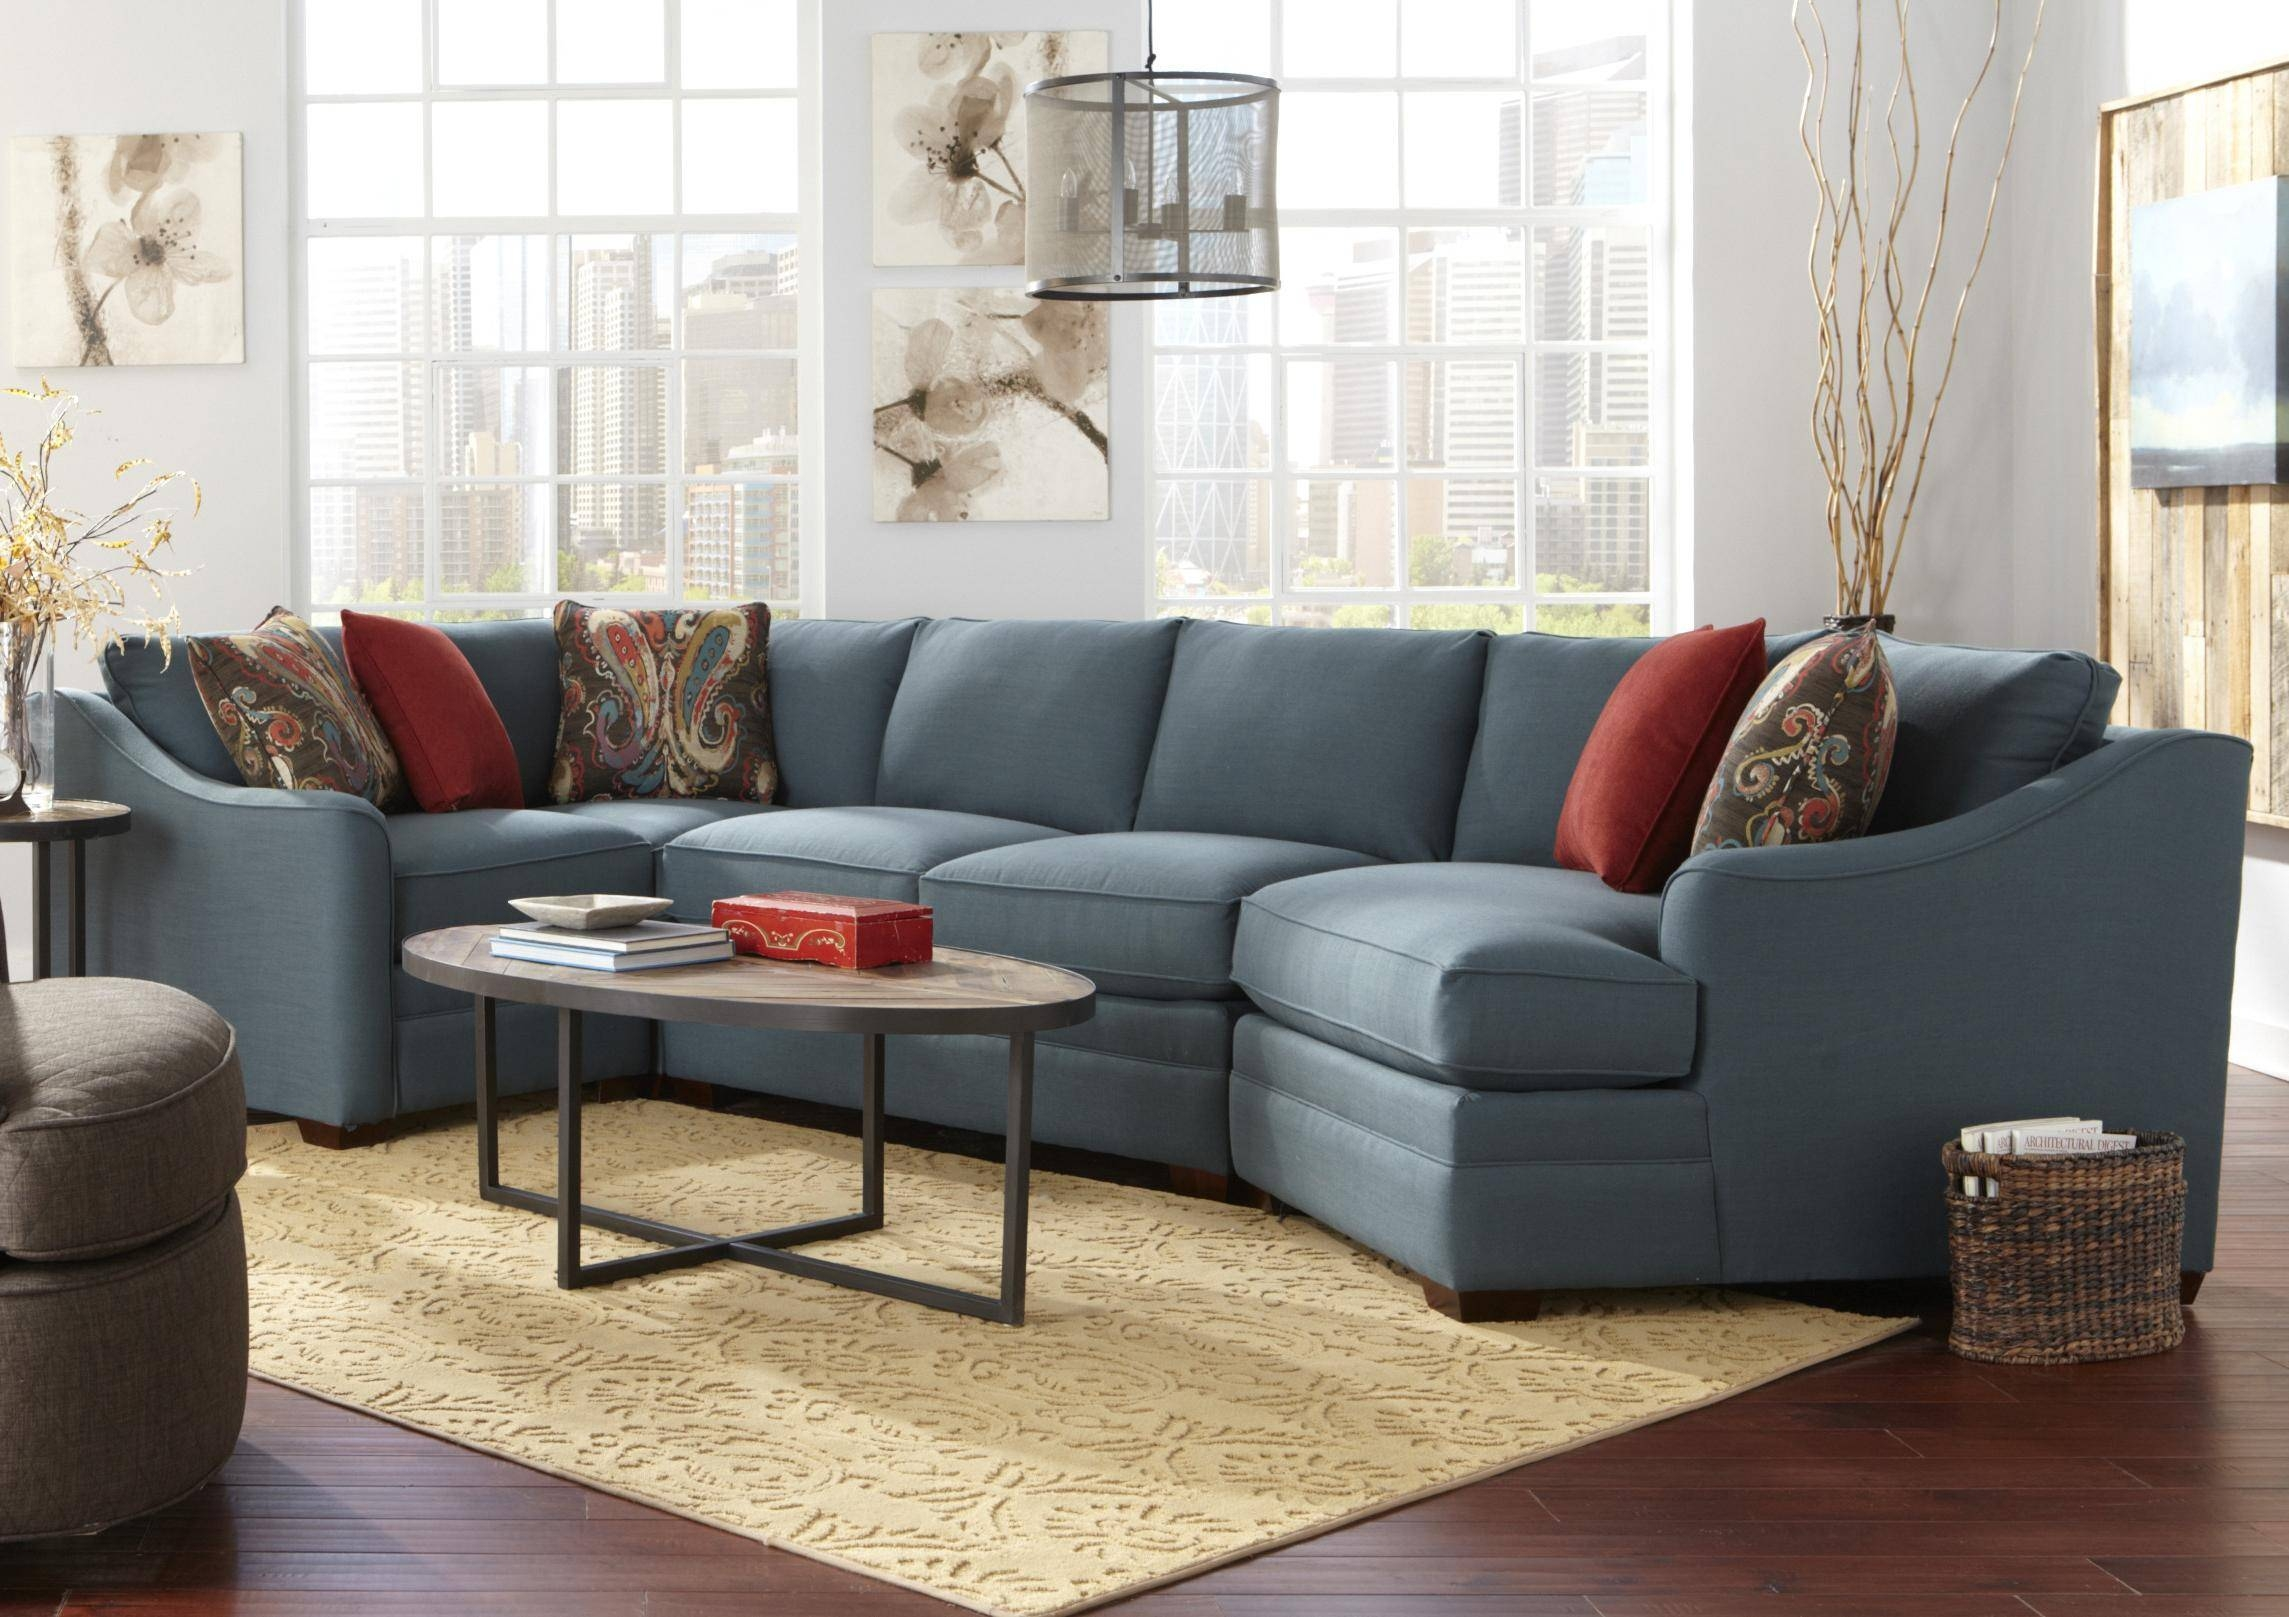 Sectional Sofa With Cuddler | Sofas Decoration inside Cuddler Sectional Sofa (Image 22 of 30)